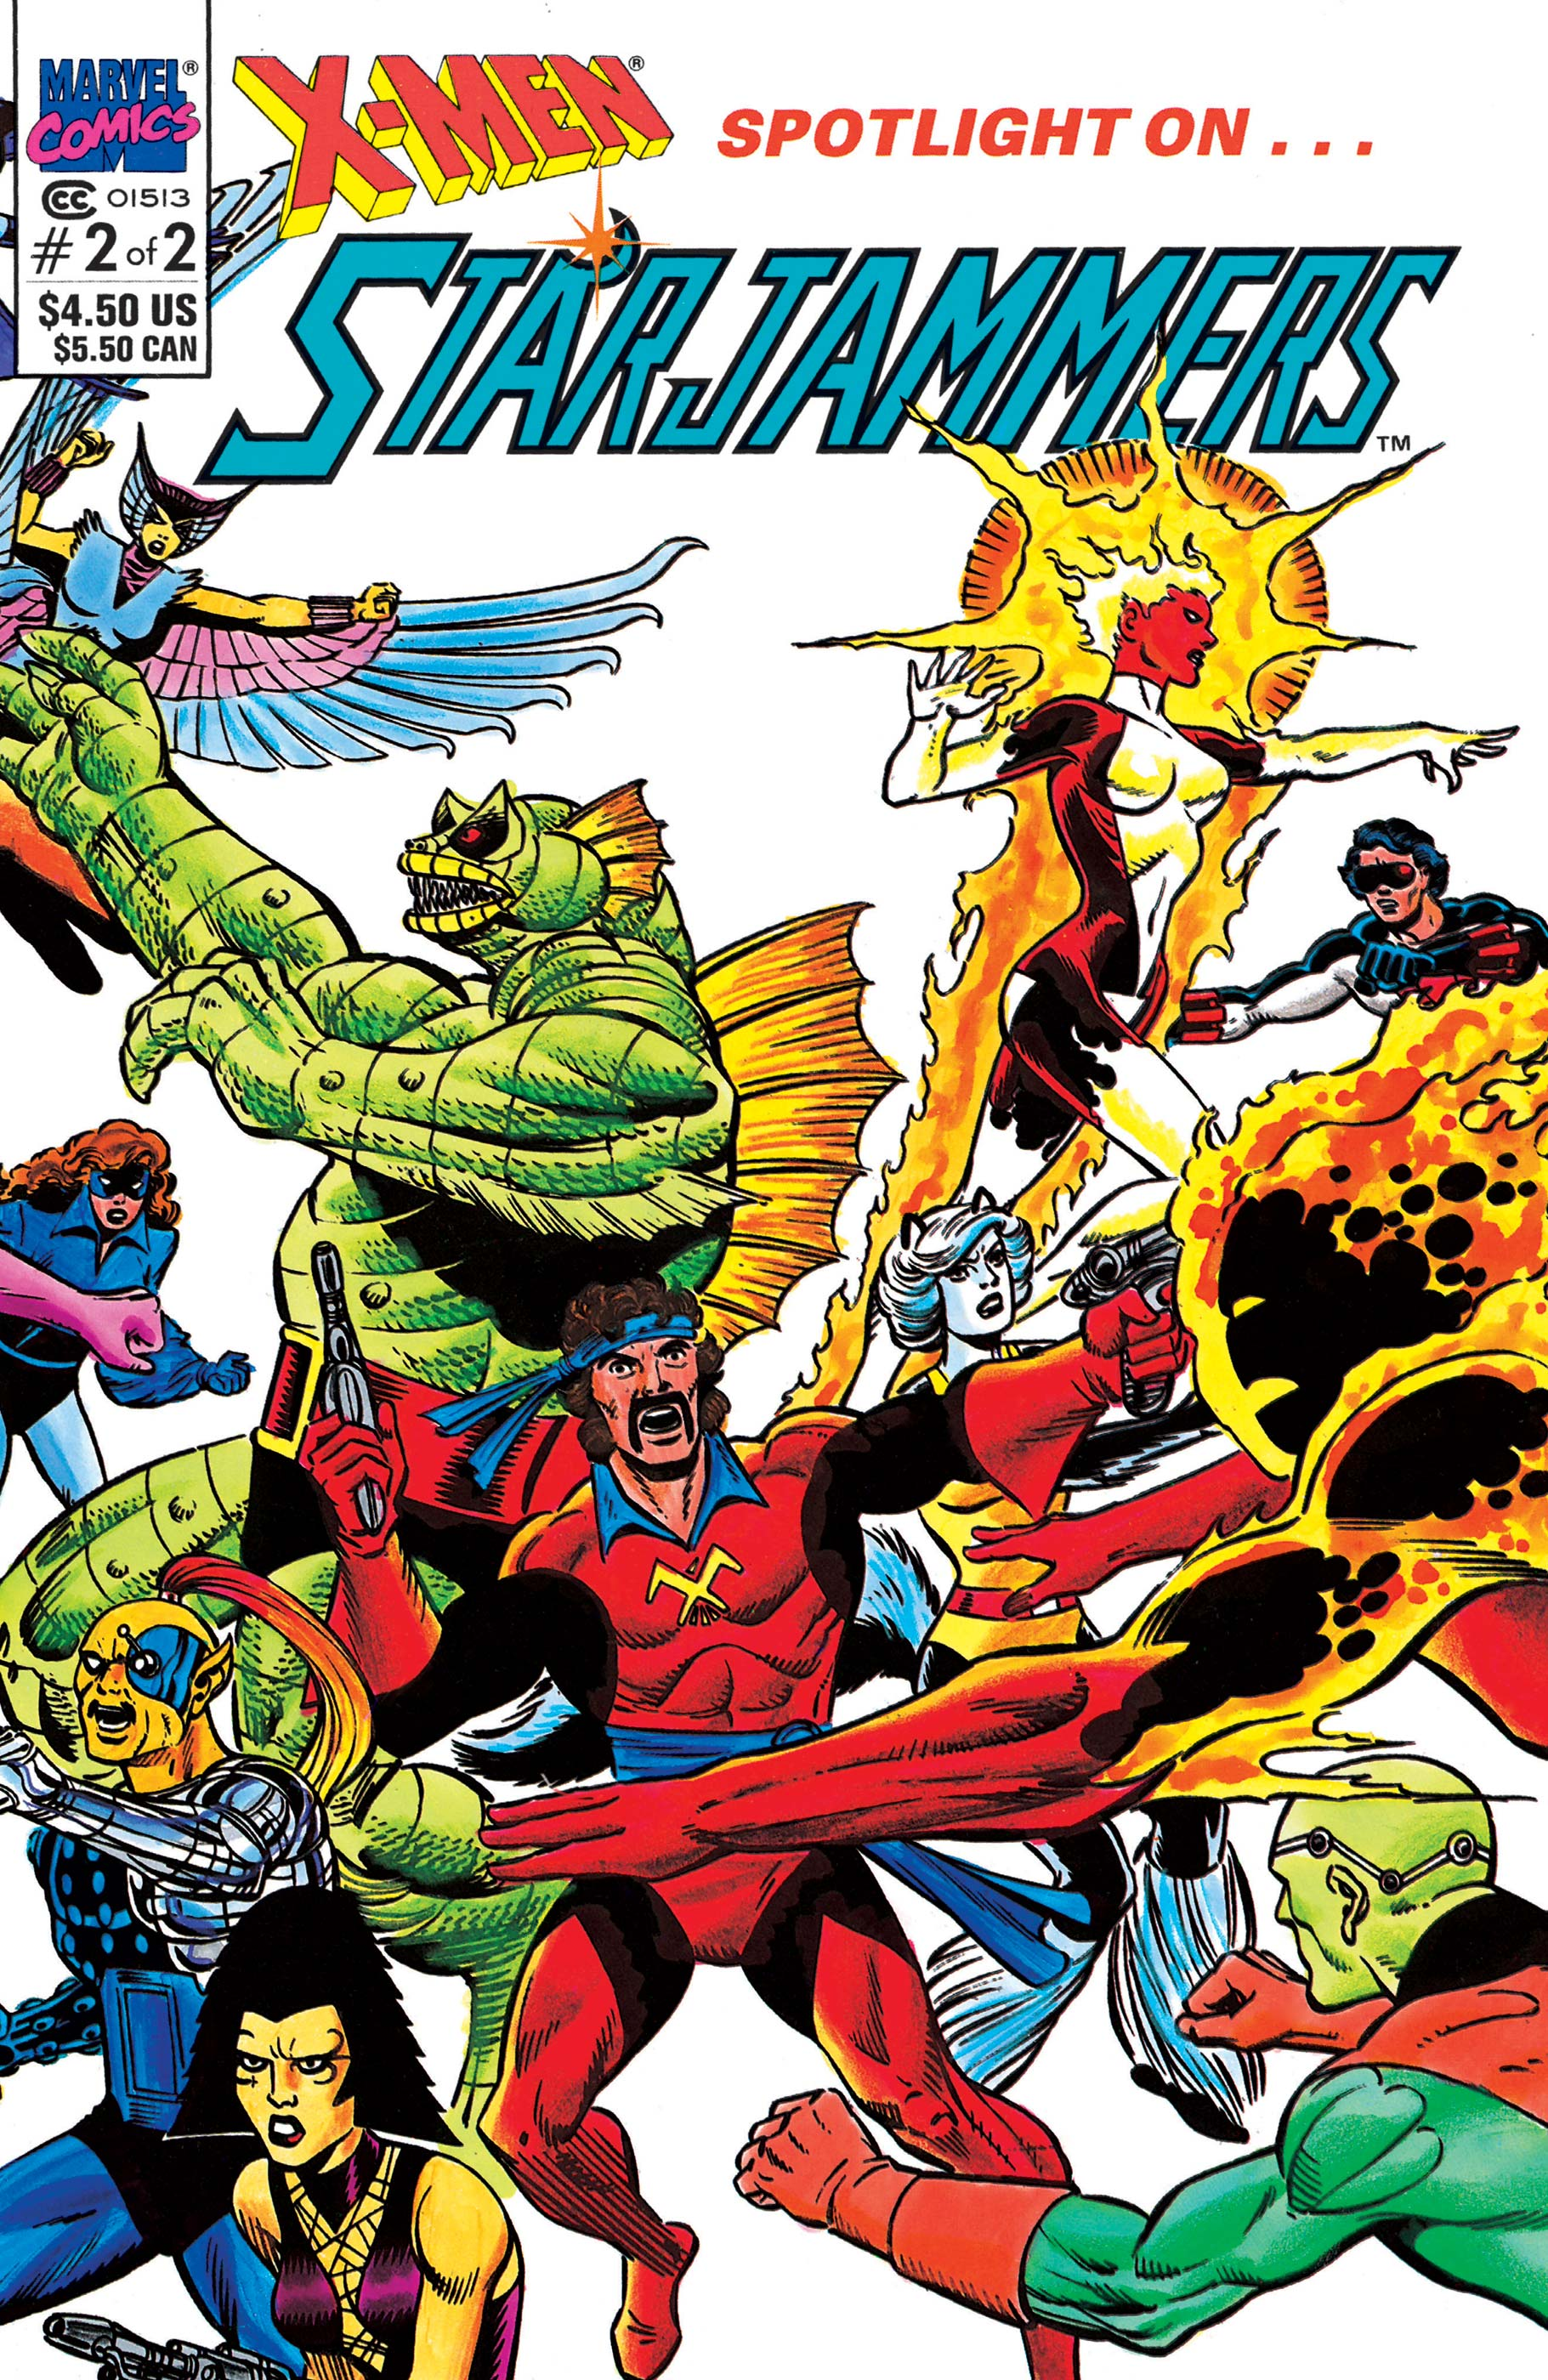 X-Men: Spotlight on Starjammers (1990) #2